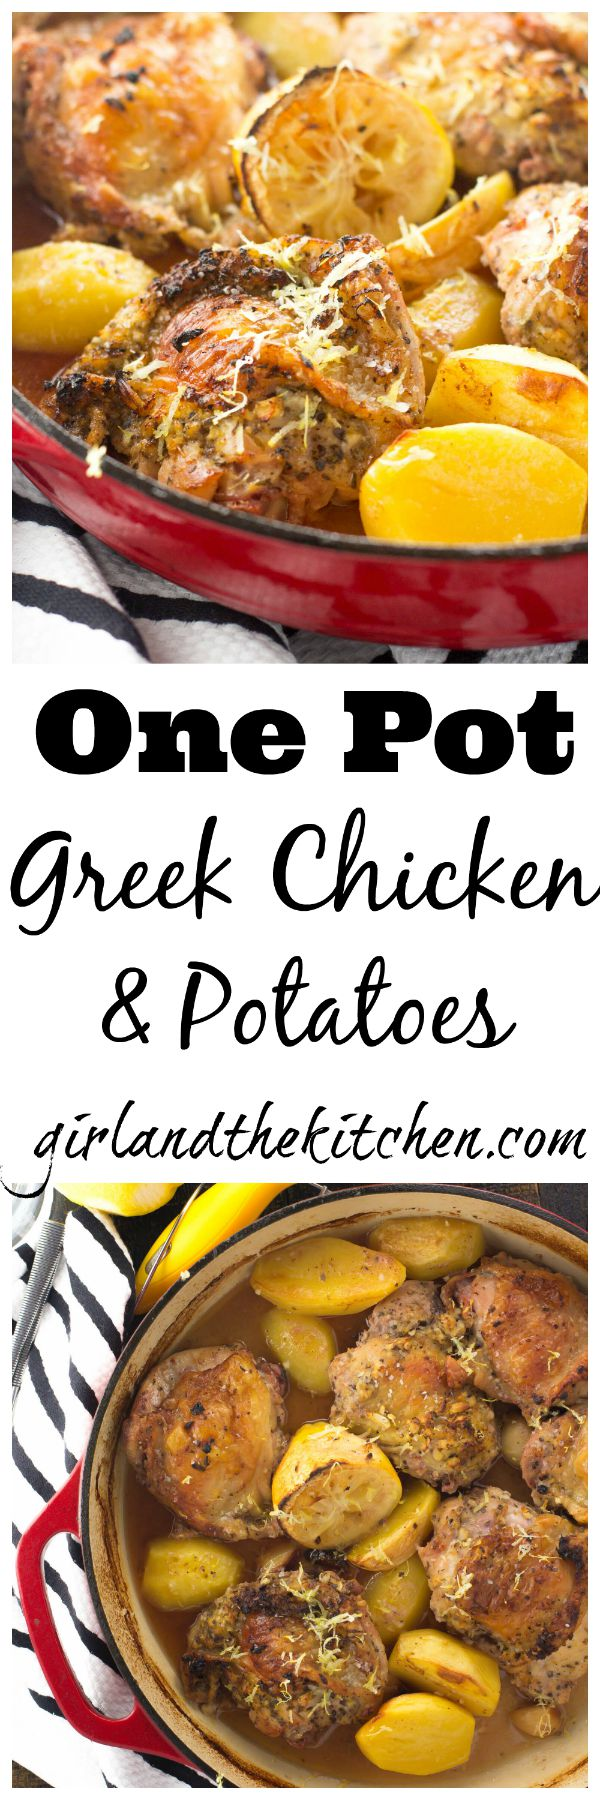 My One Pot Greek Chicken is full of bright lemony flavors and super tender potatoes. All made in one pot with maximum flavor and minimum clean-up!